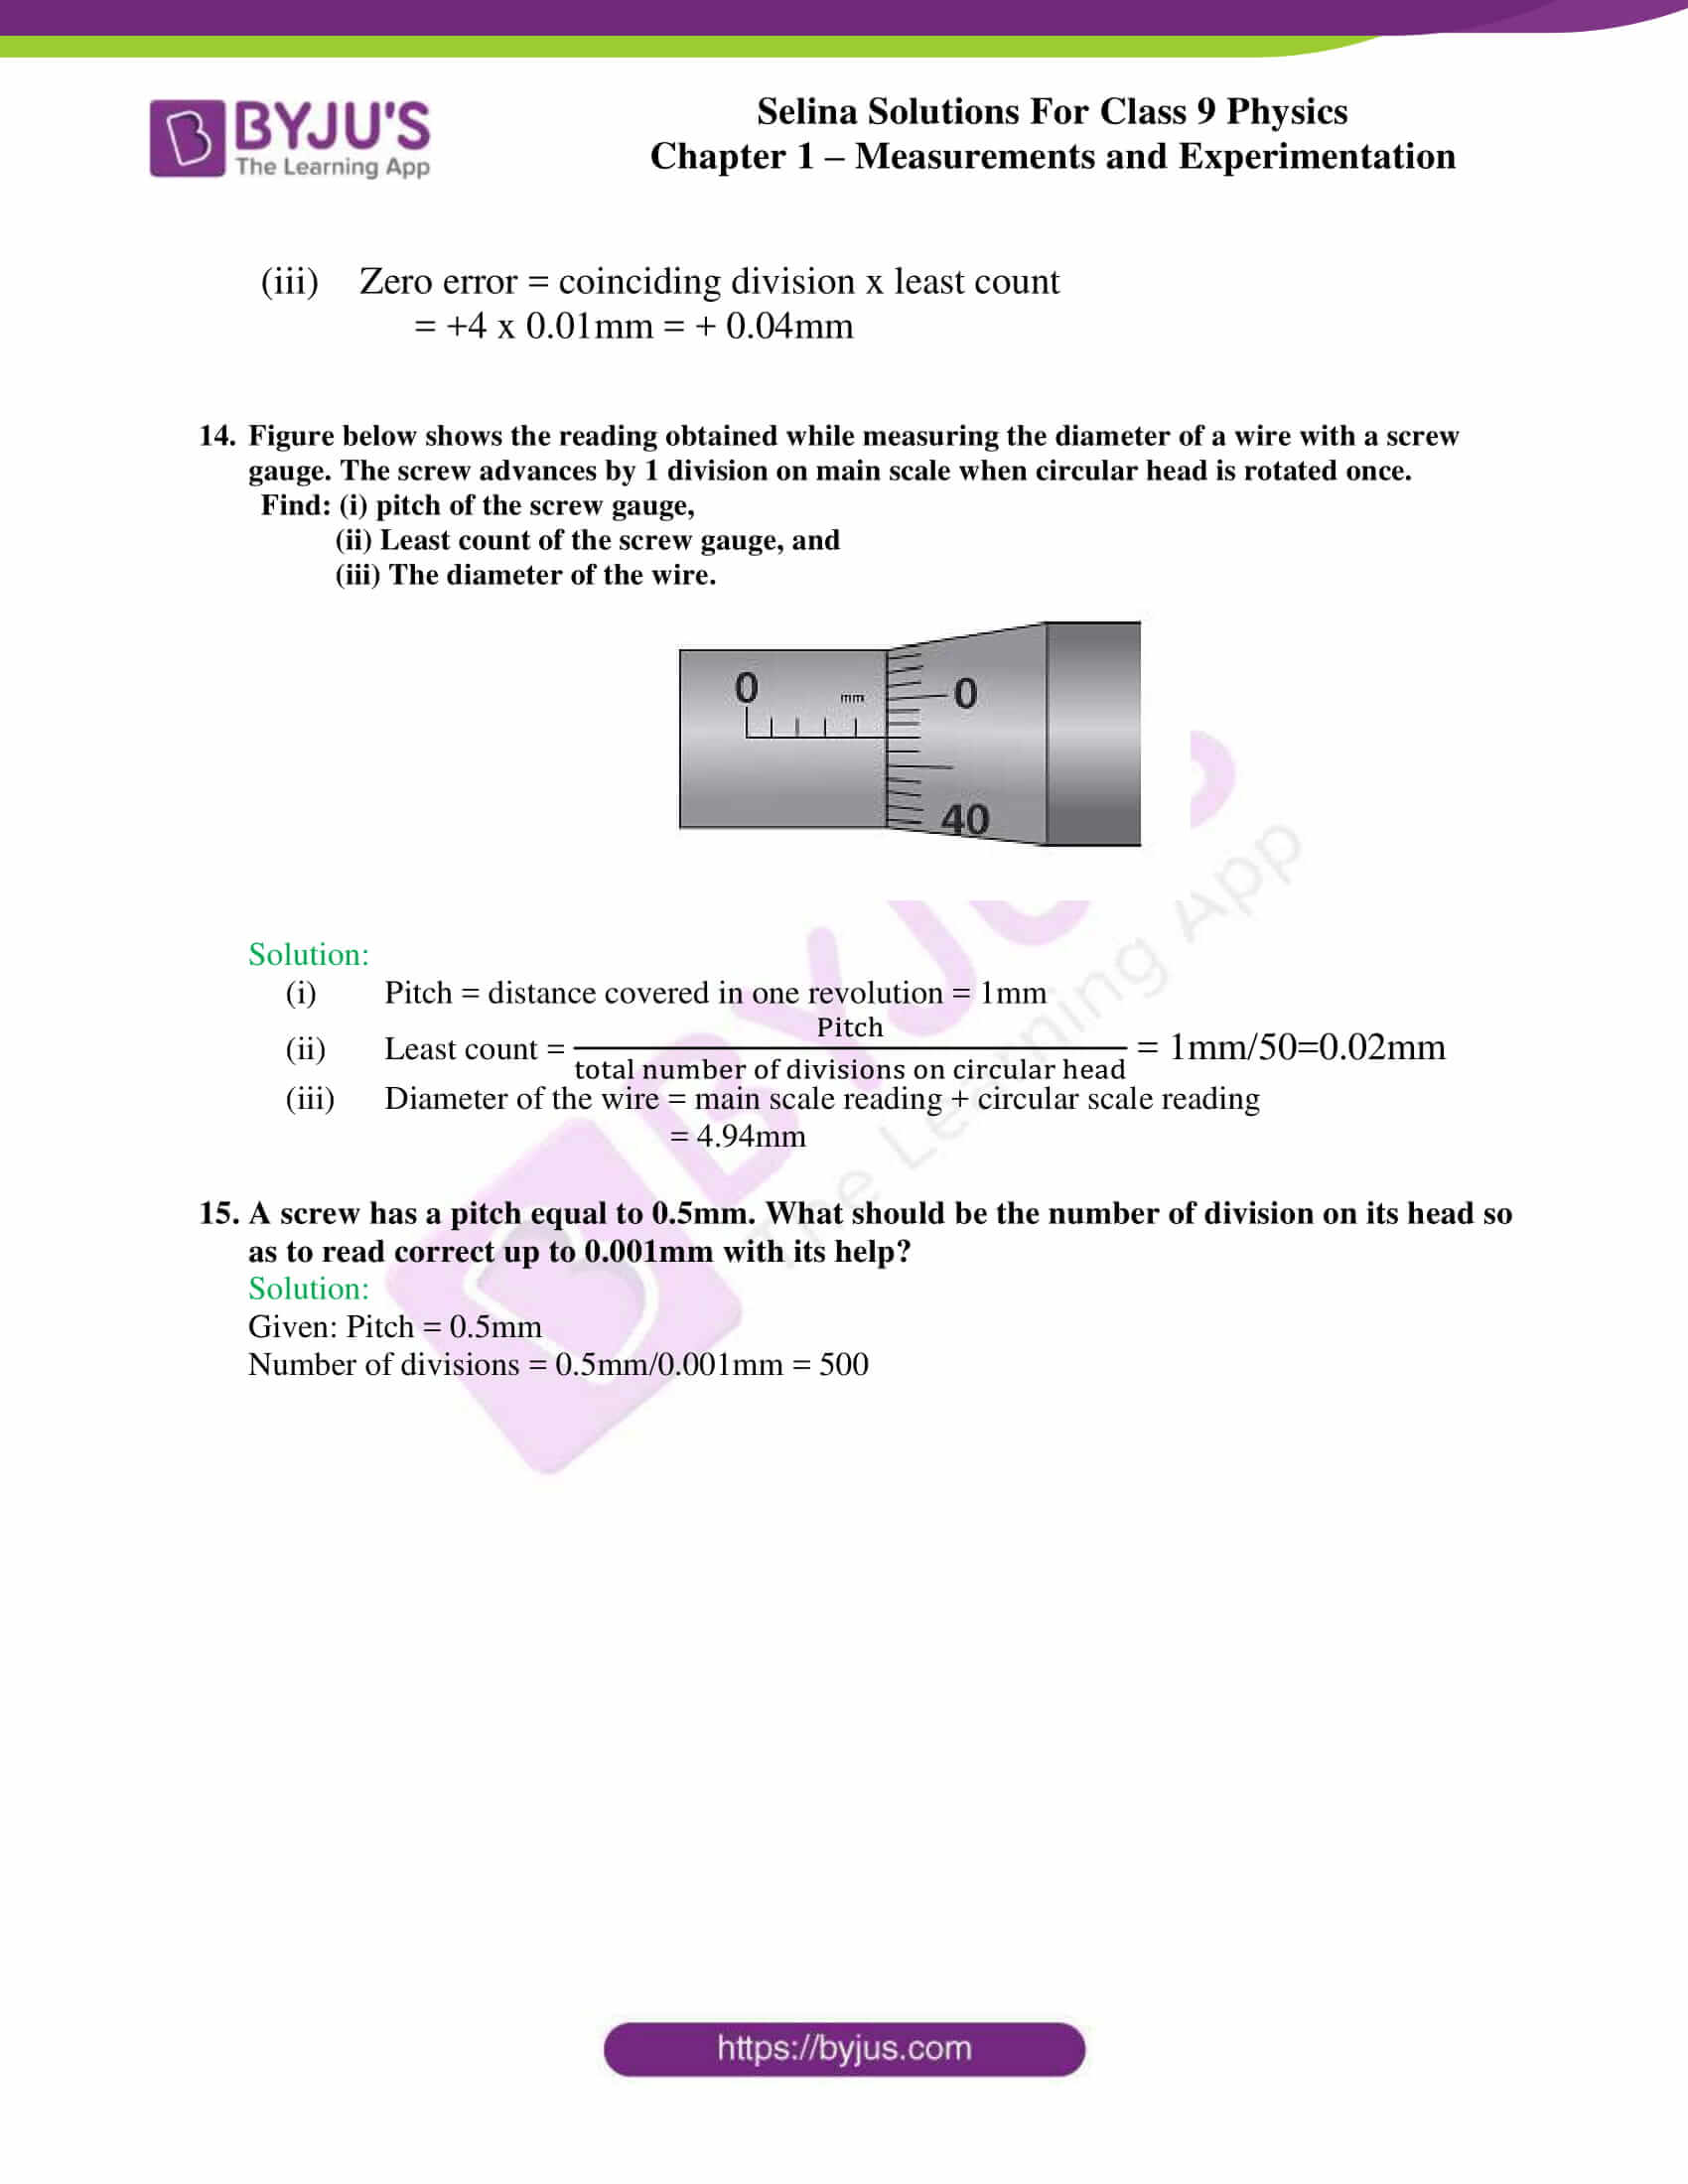 selina solutions class 9 physics chapter 1 Measurements and Experimentation part 24